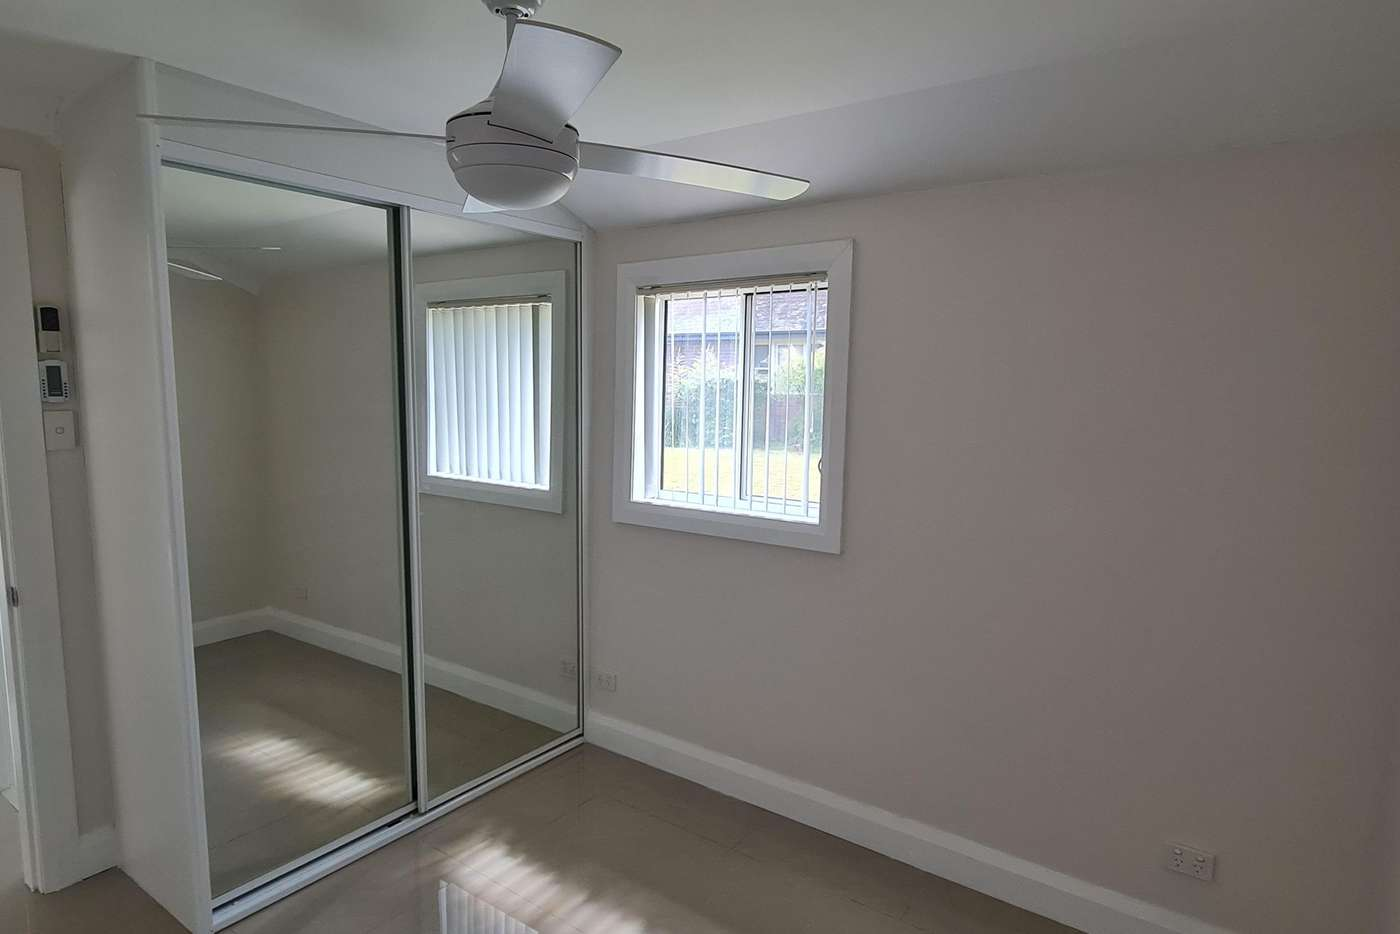 Sixth view of Homely house listing, 7A Weemala Road, Pennant Hills NSW 2120